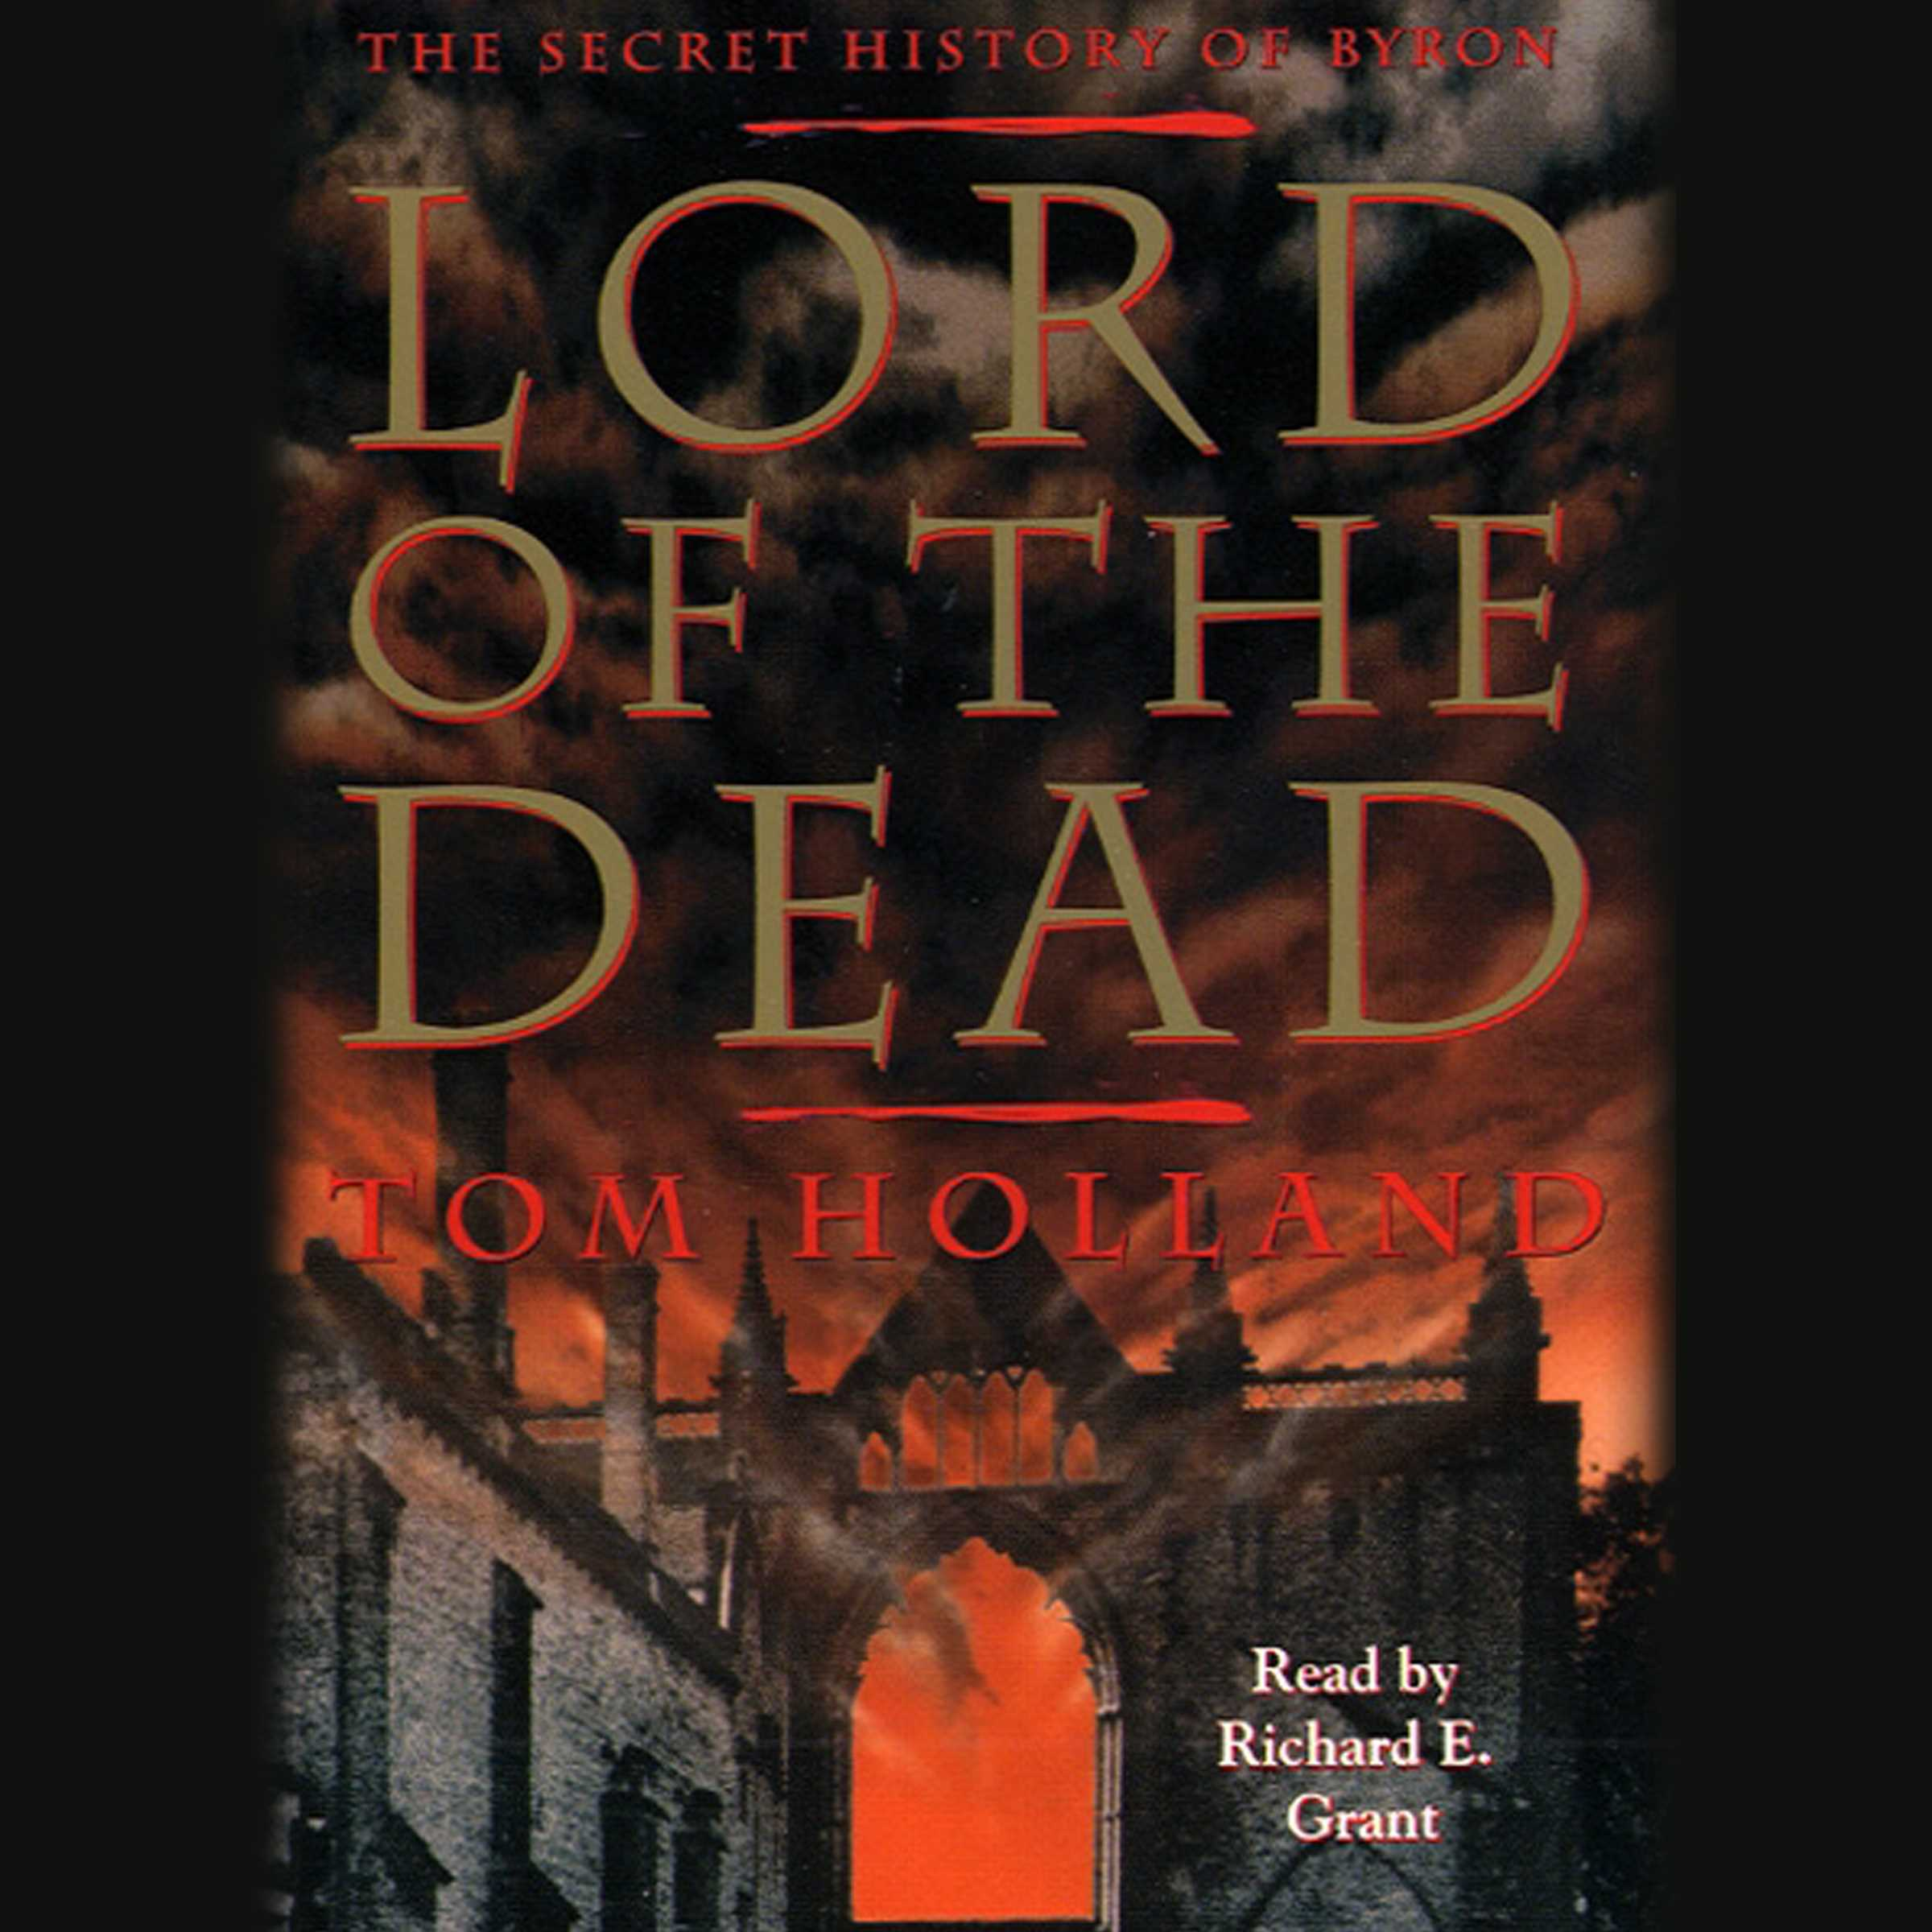 Lord-of-the-dead-the-secret-history-of-byron-9780743549790_hr